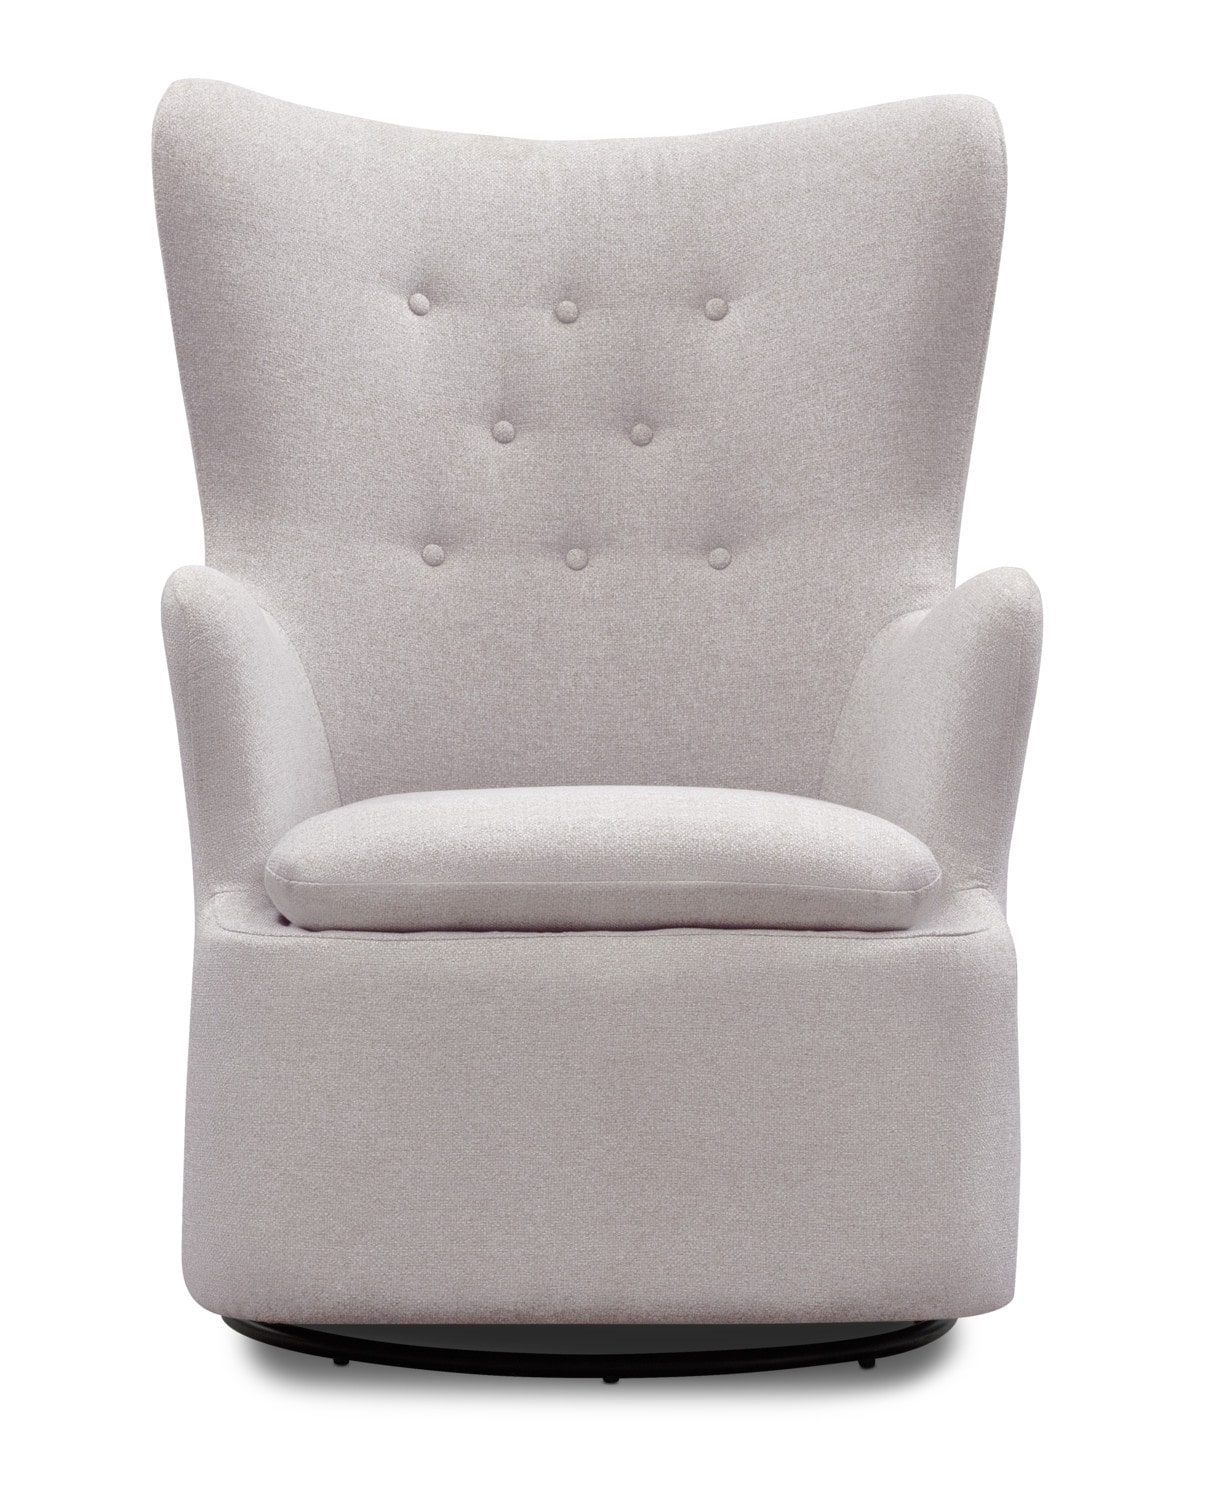 swivel chair value city dining room covers pier one addie gray furniture and